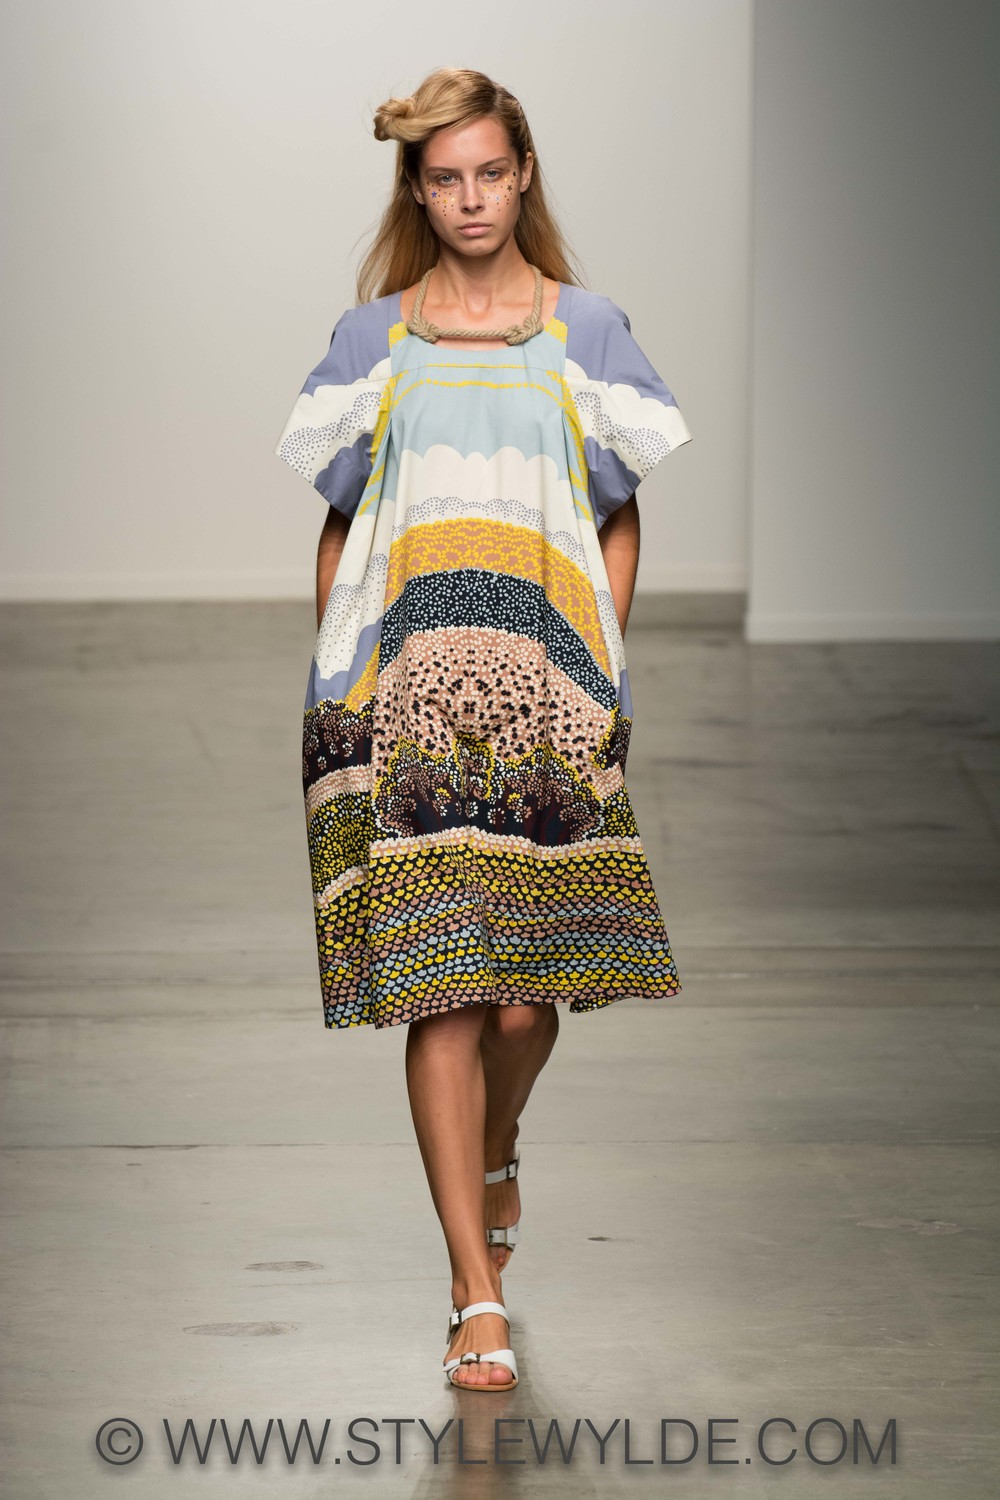 StyleWylde_adetacher_FOH_SS15_sw (1 of 37).jpg